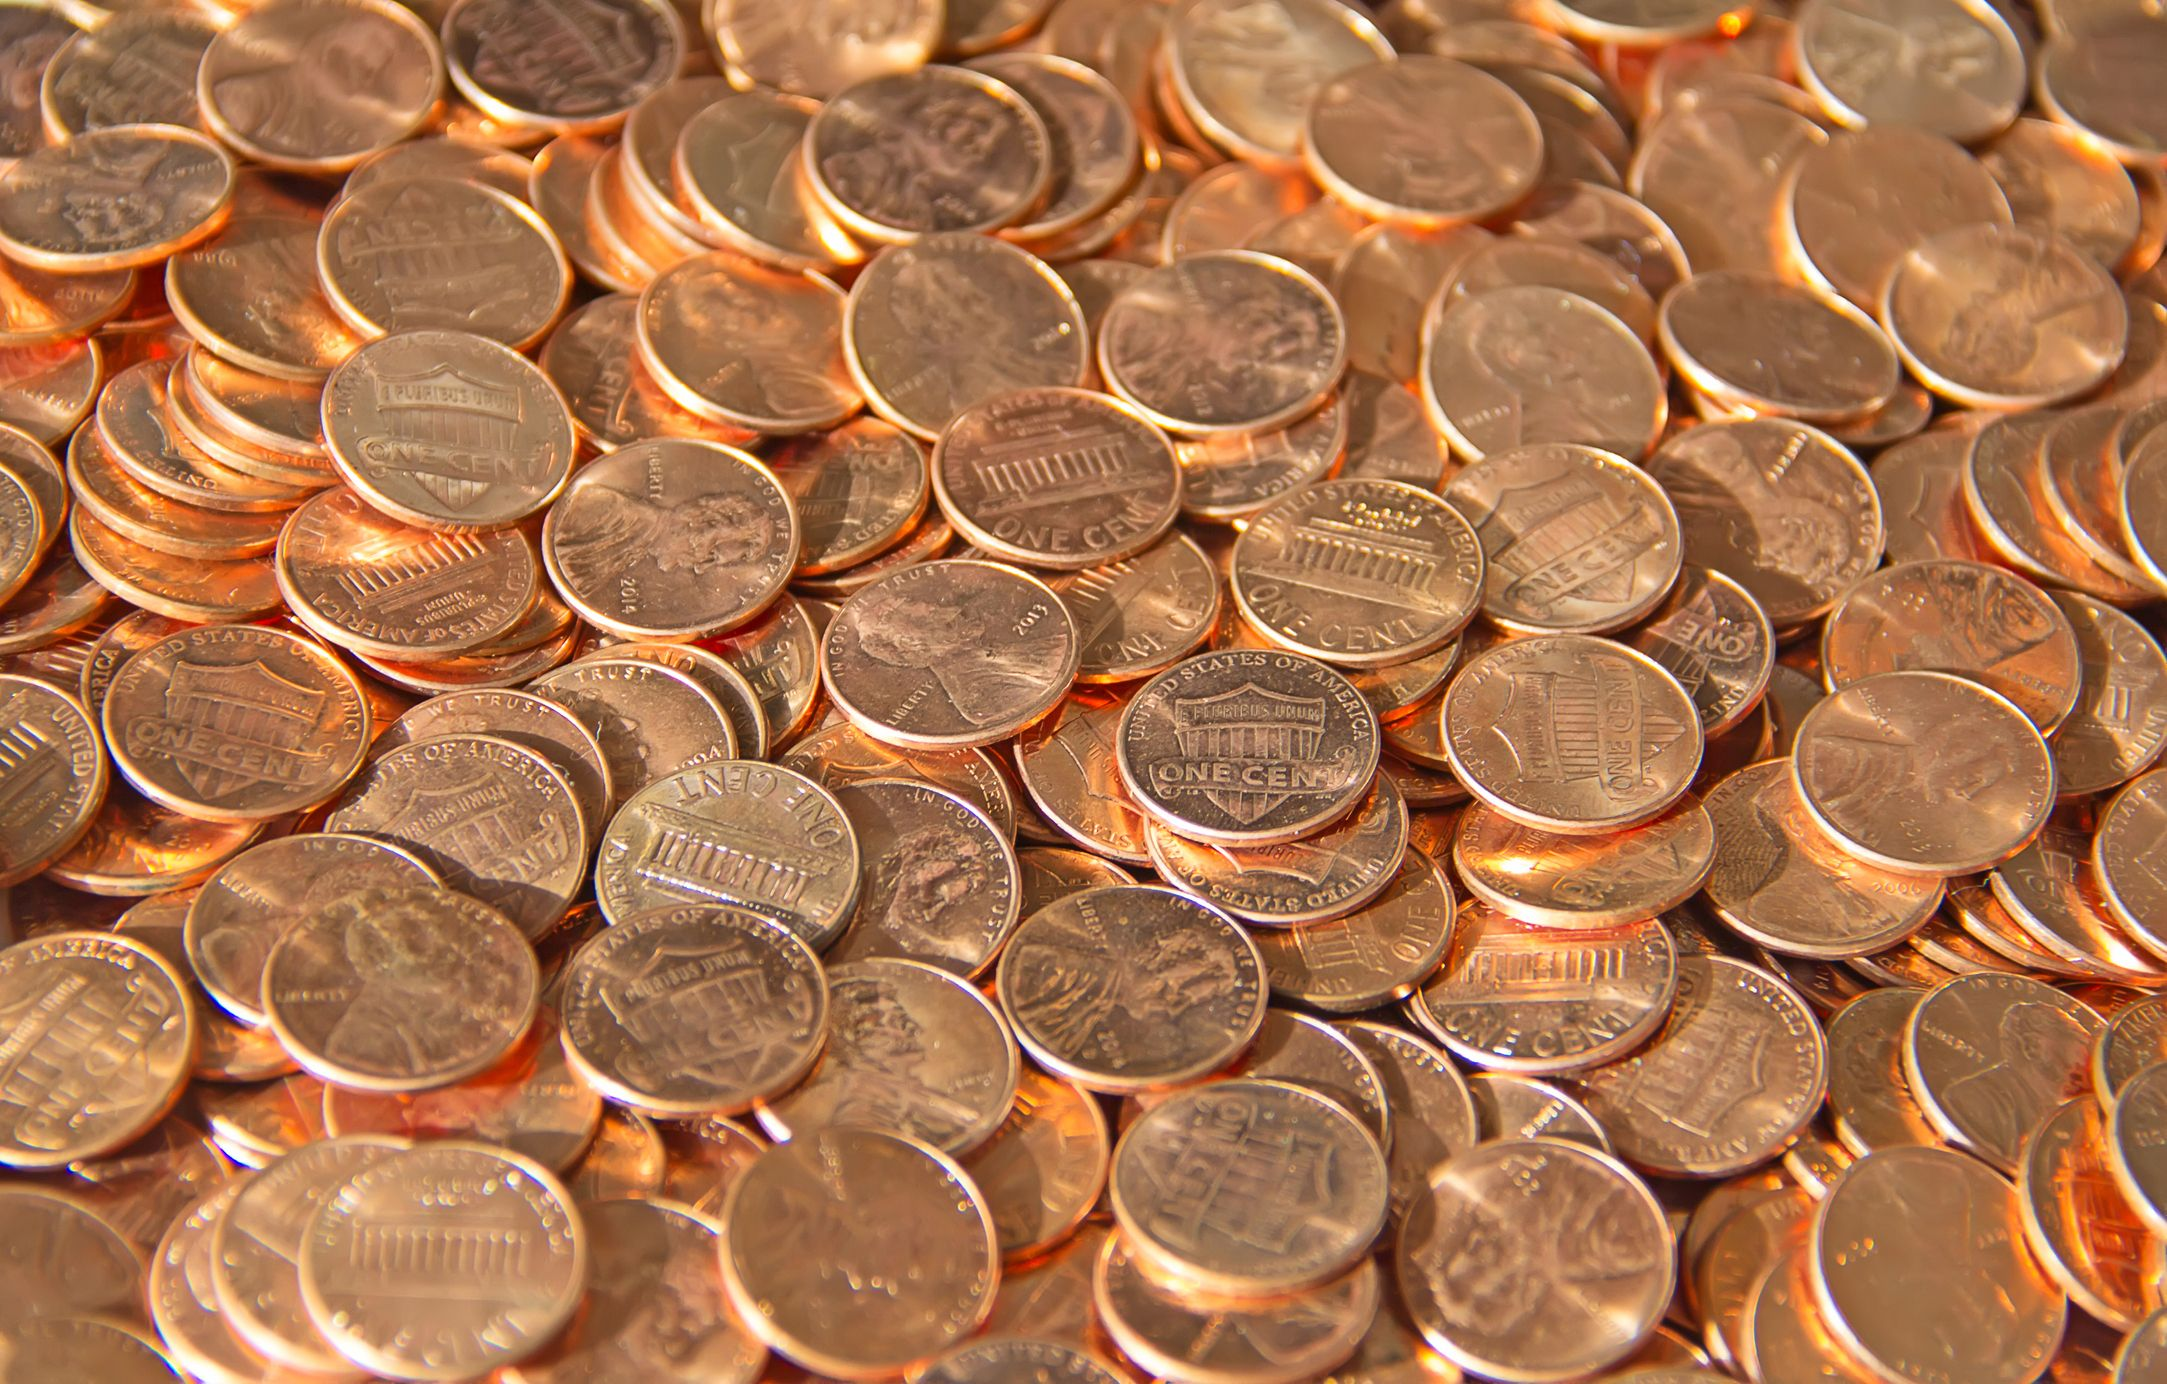 Your Old Pennies From 1943 Could Be Worth $200,000